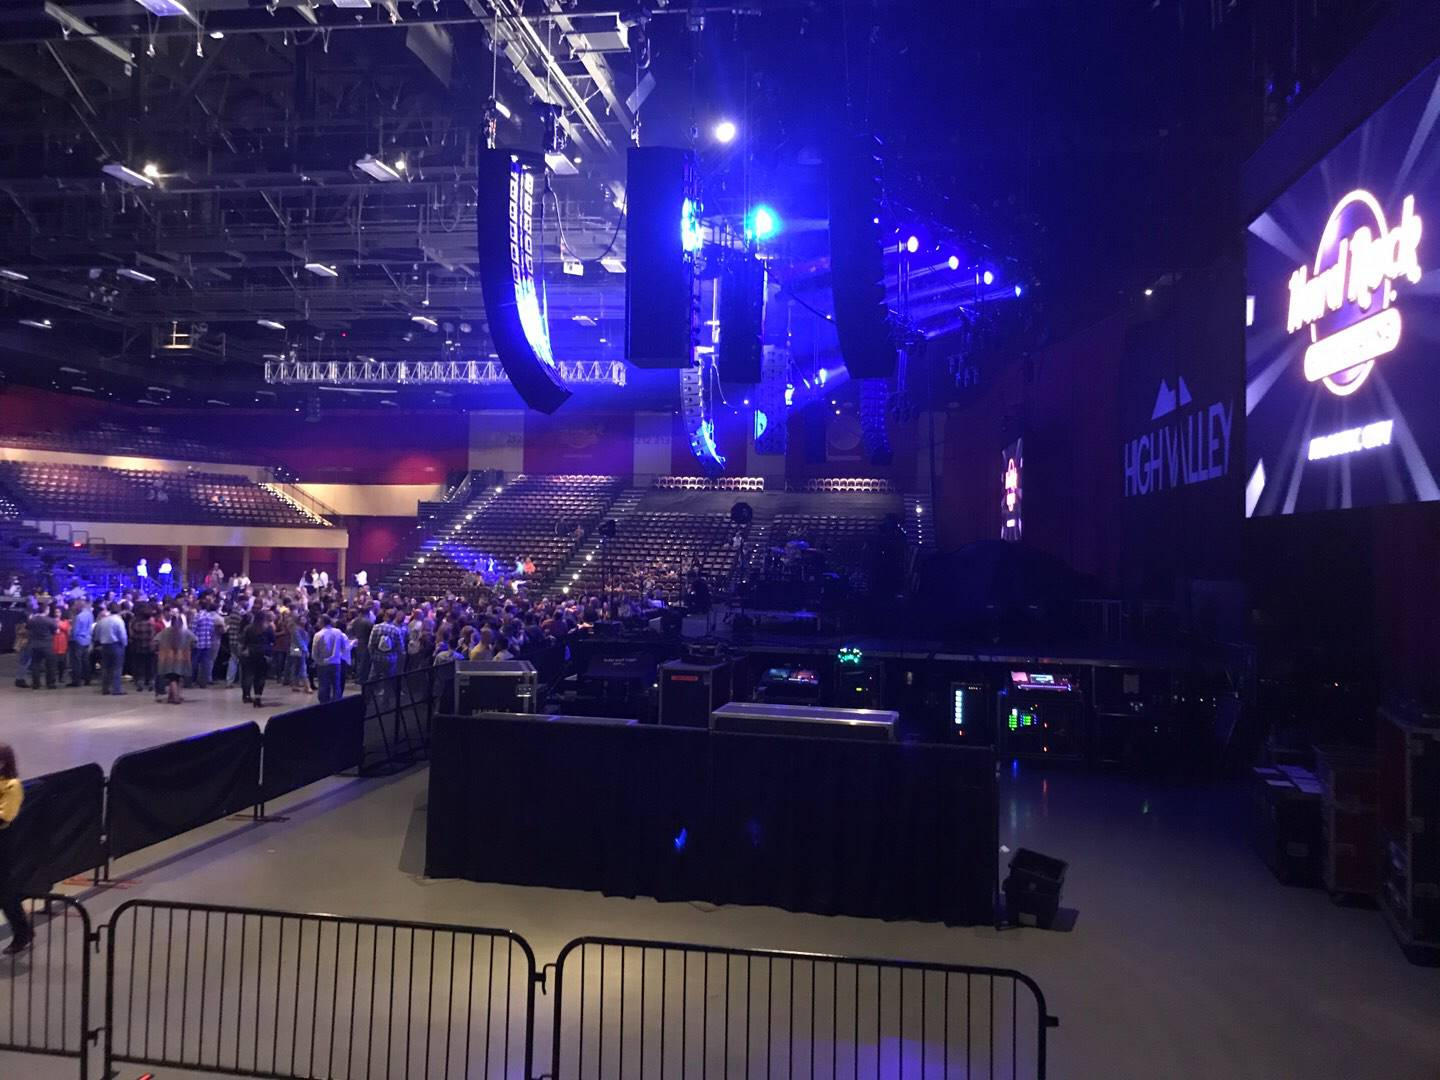 Hard Rock Live at Etess Arena, section 201, row E, seat 2